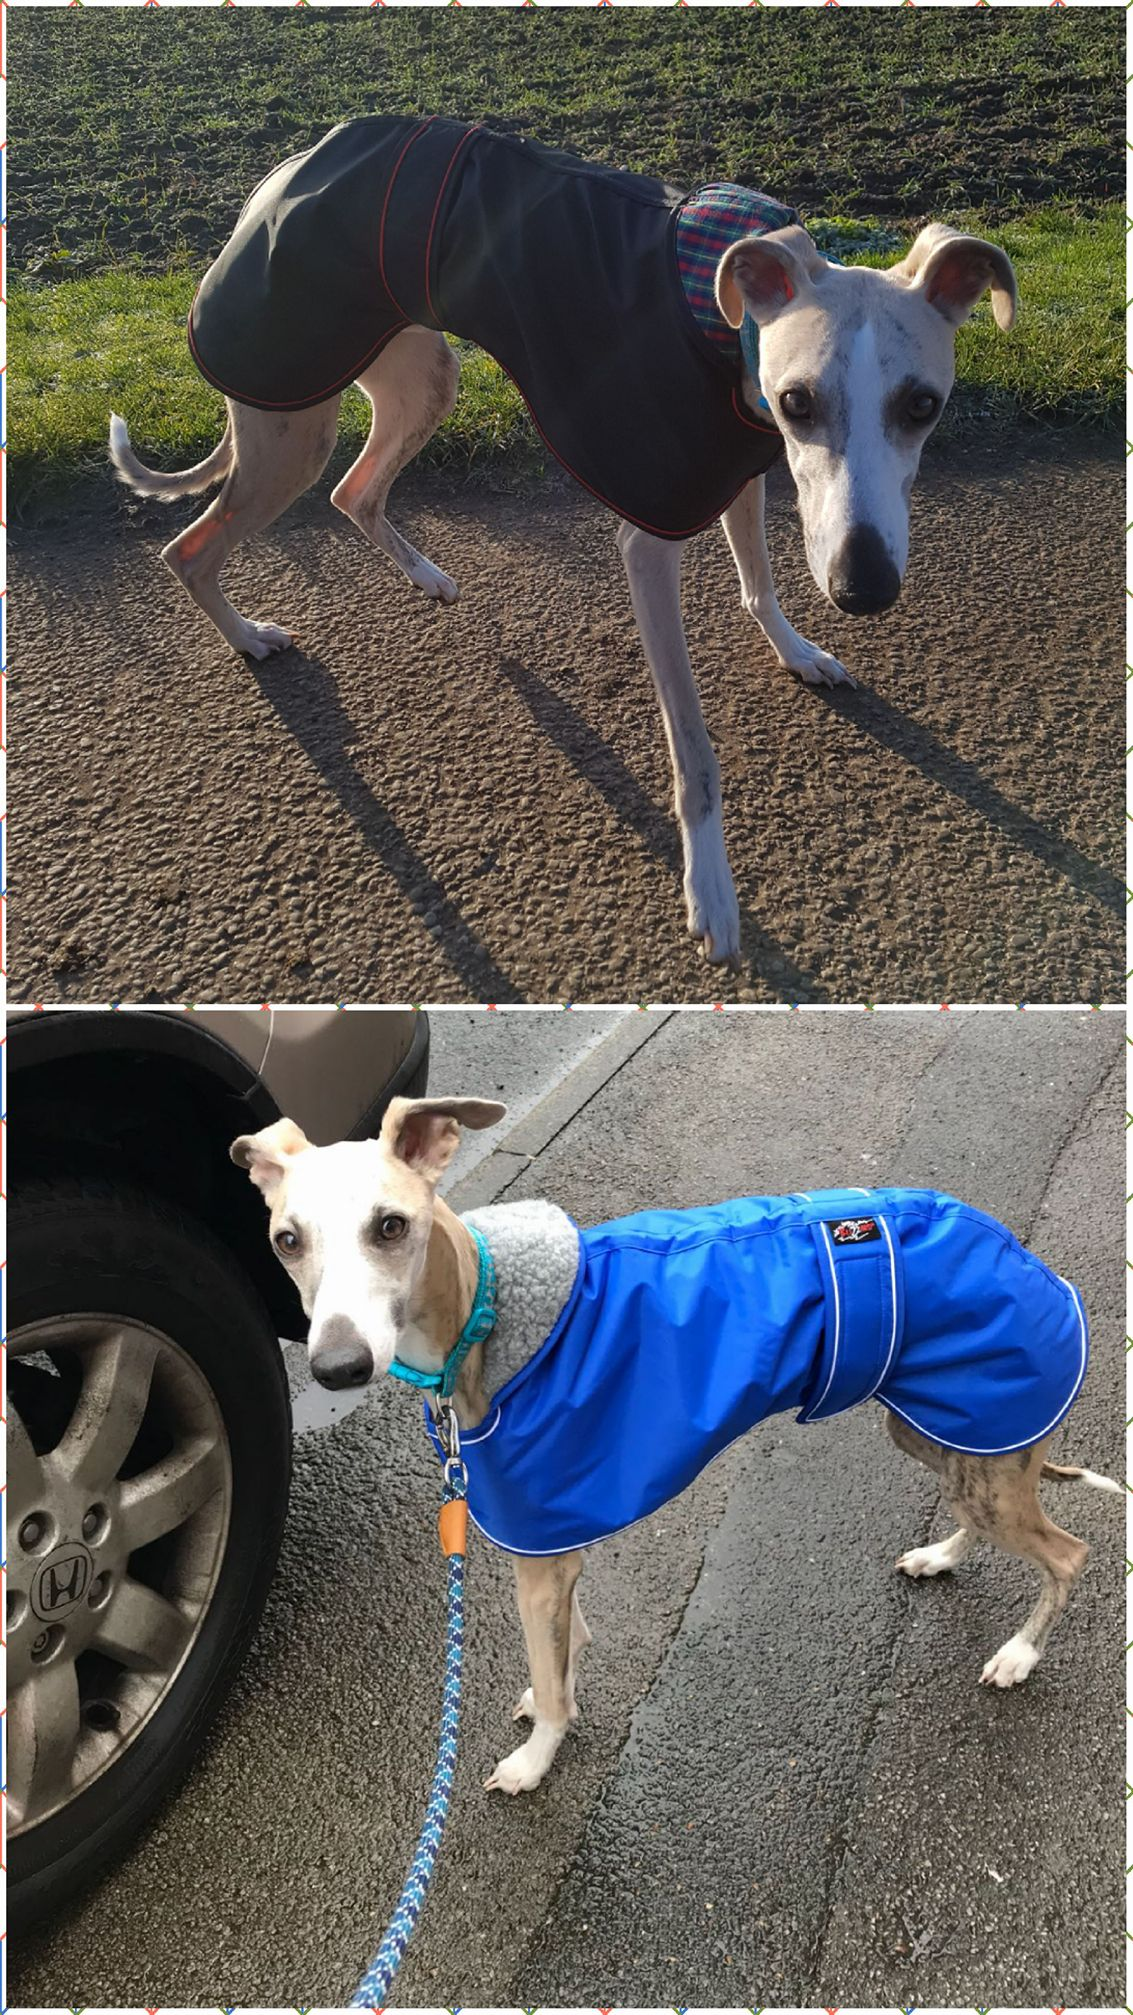 Pointy Faces Winter and Raincoat Whippet